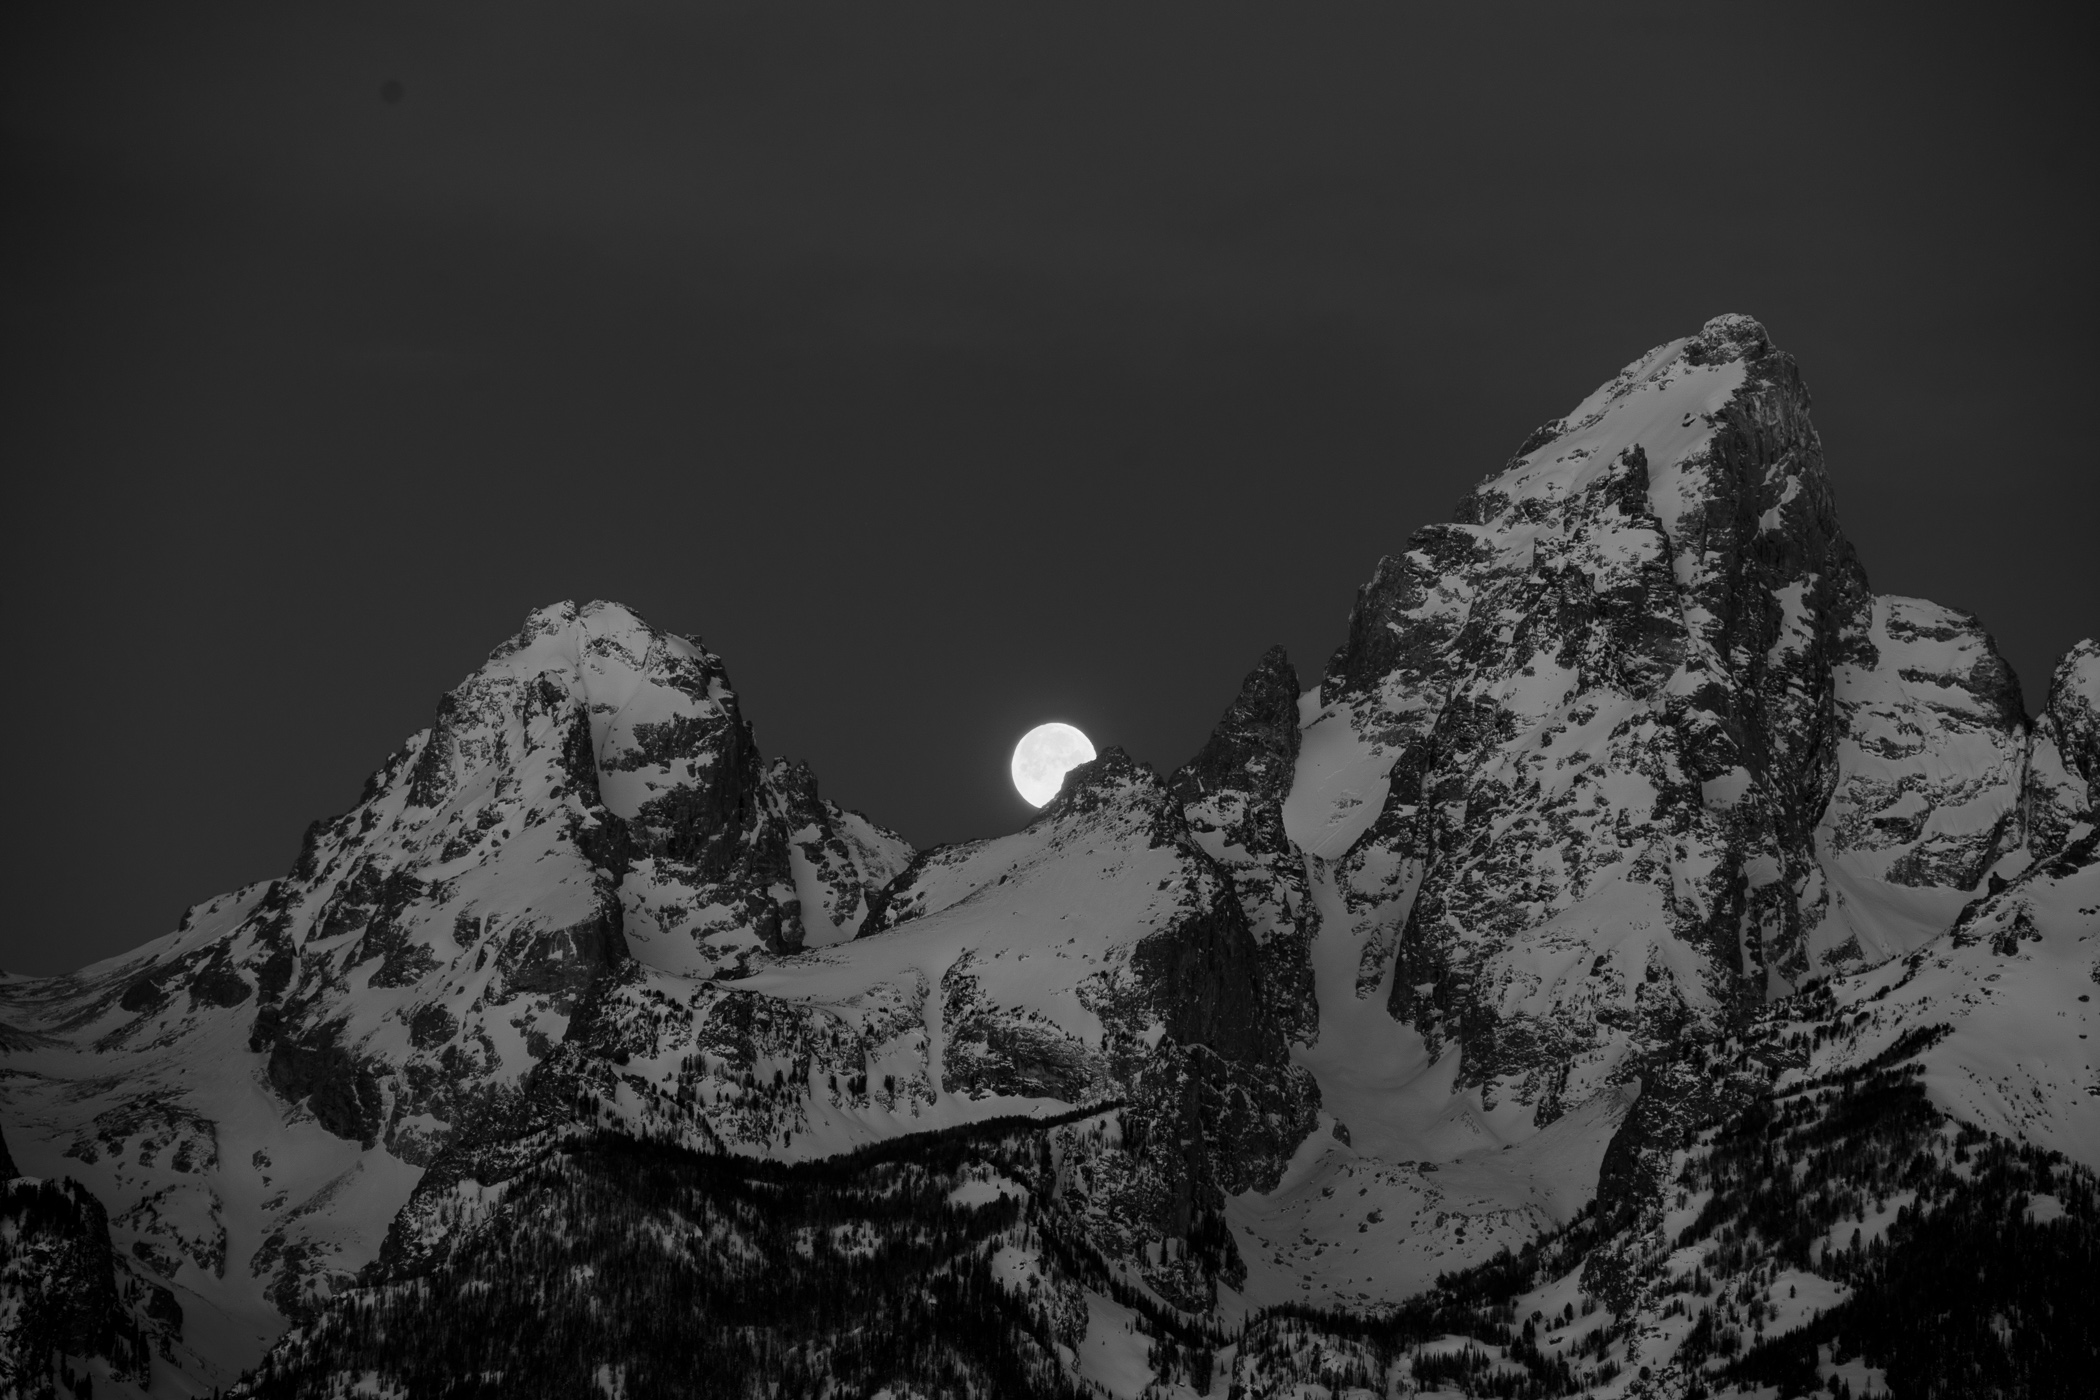 An early photo made of the moon setting between the mountain peaks